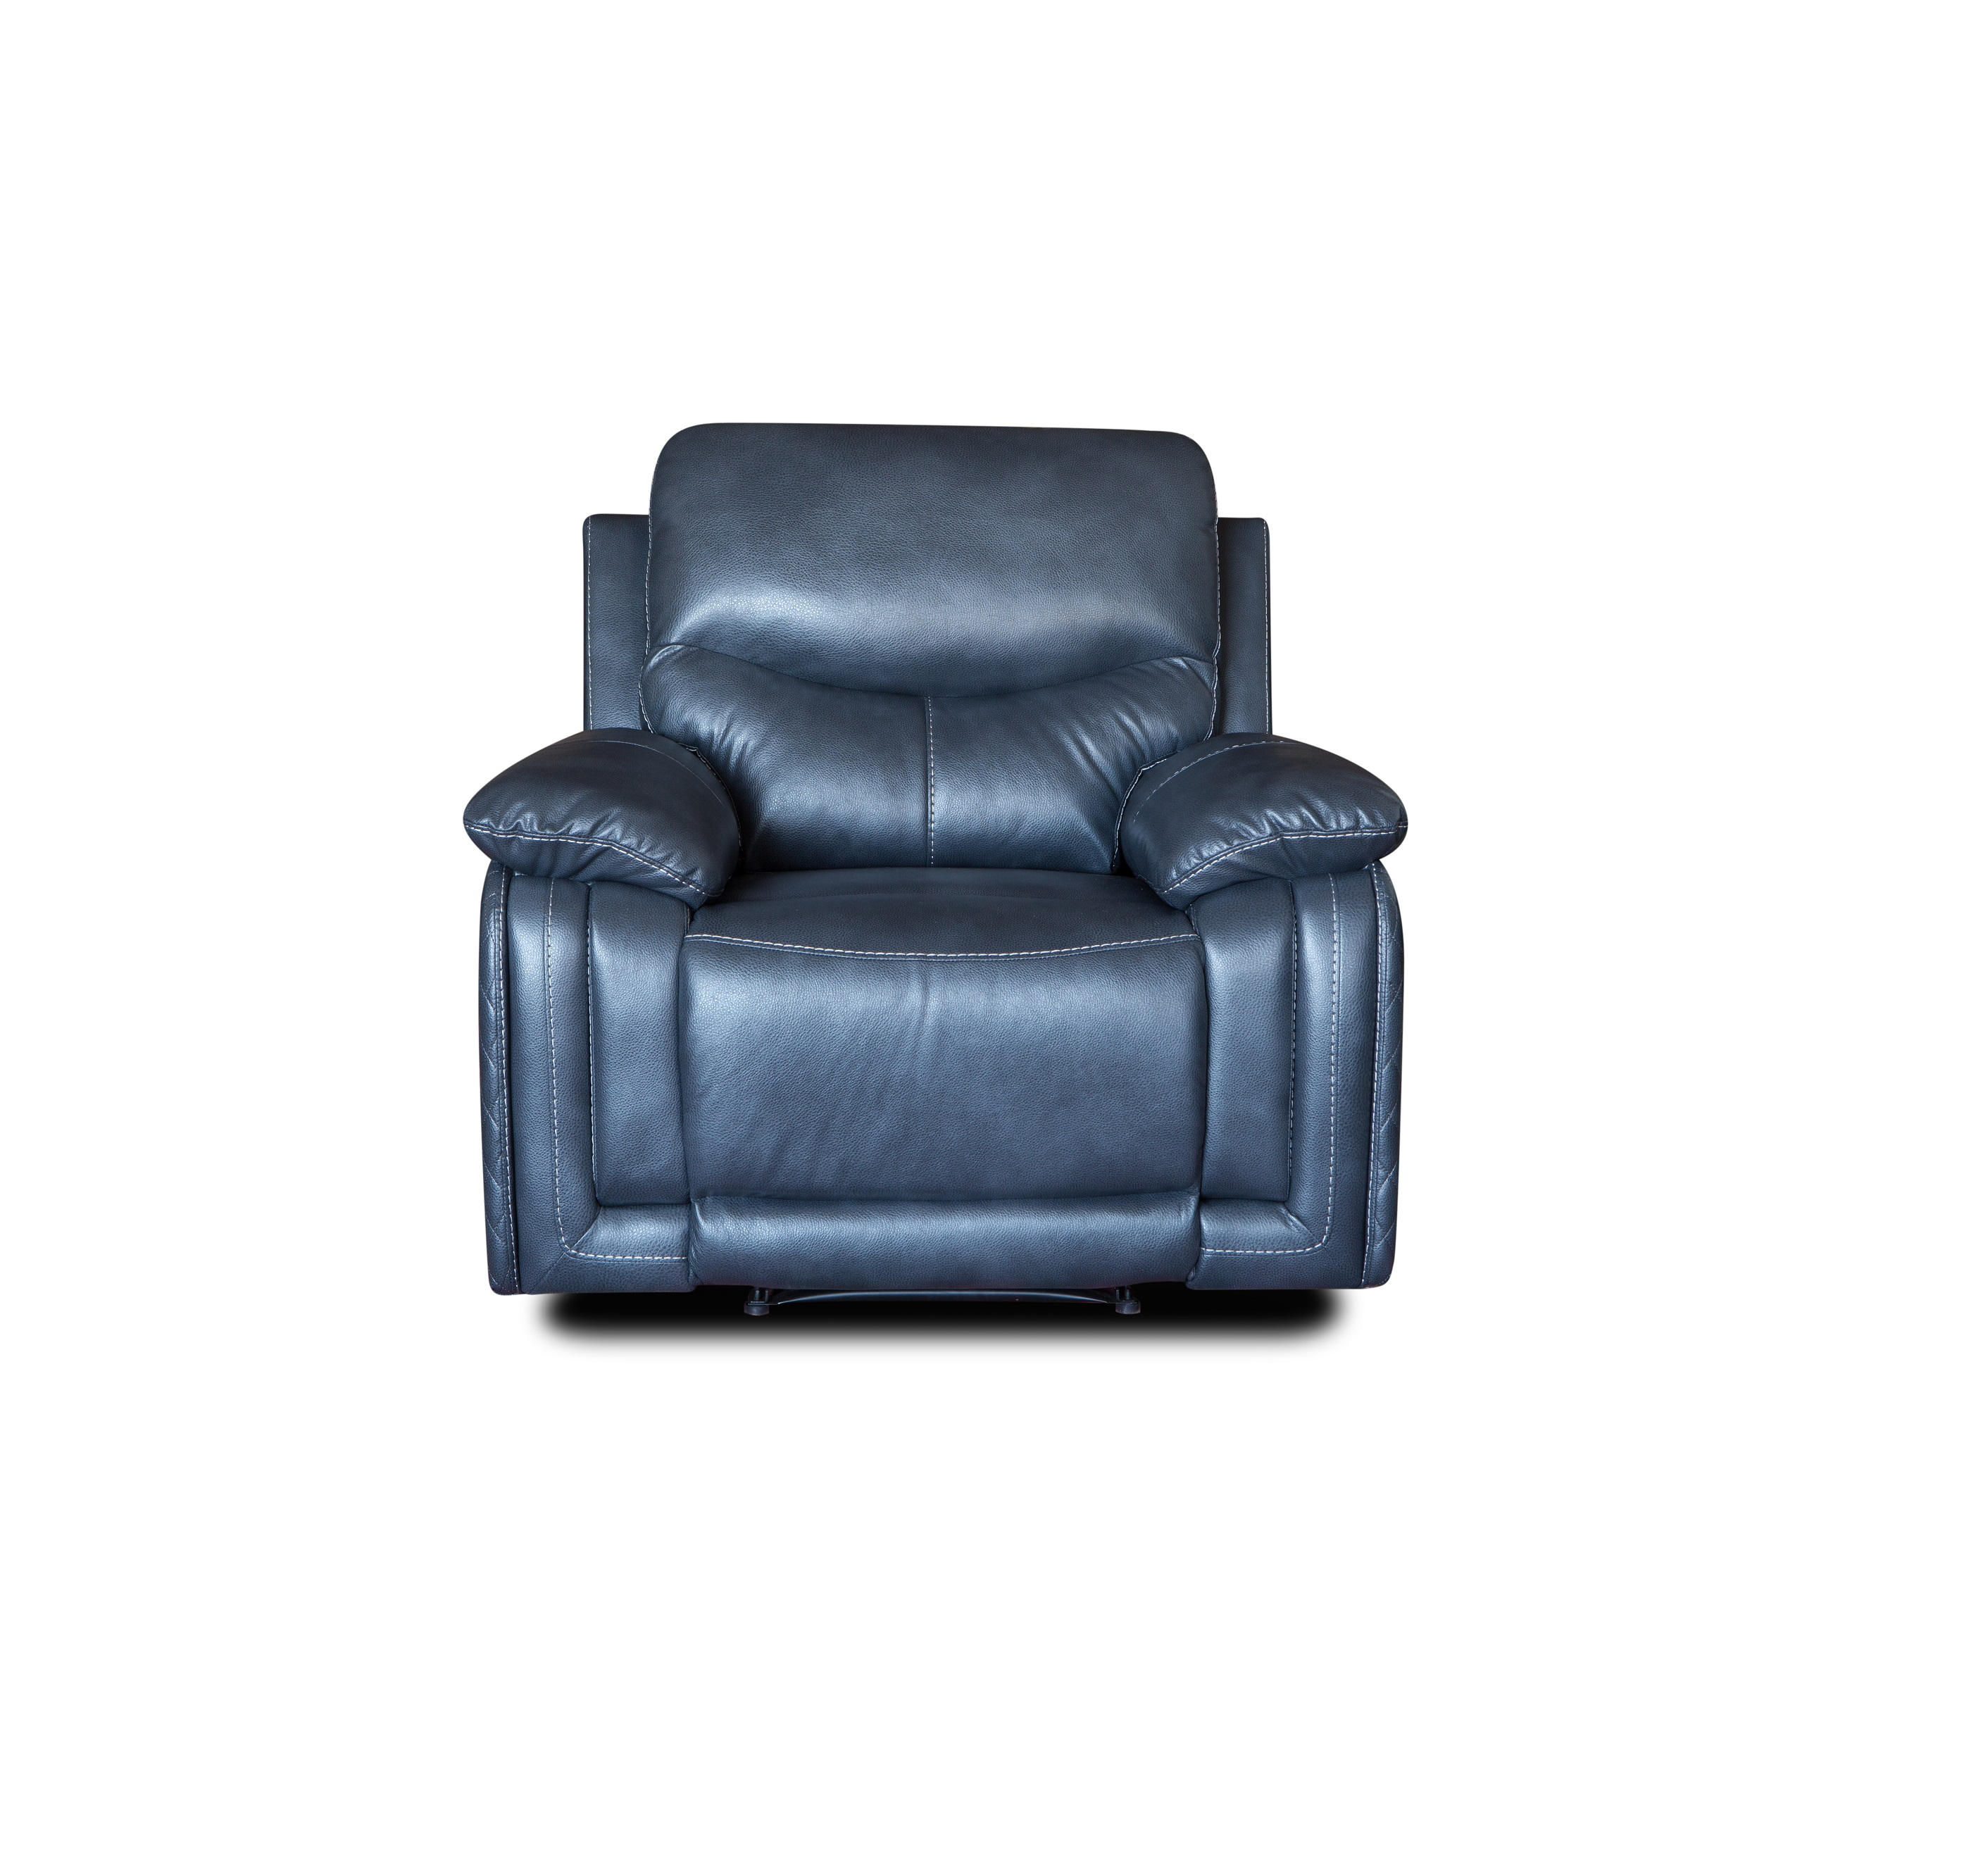 New style comfortable electric leather single recliner chair